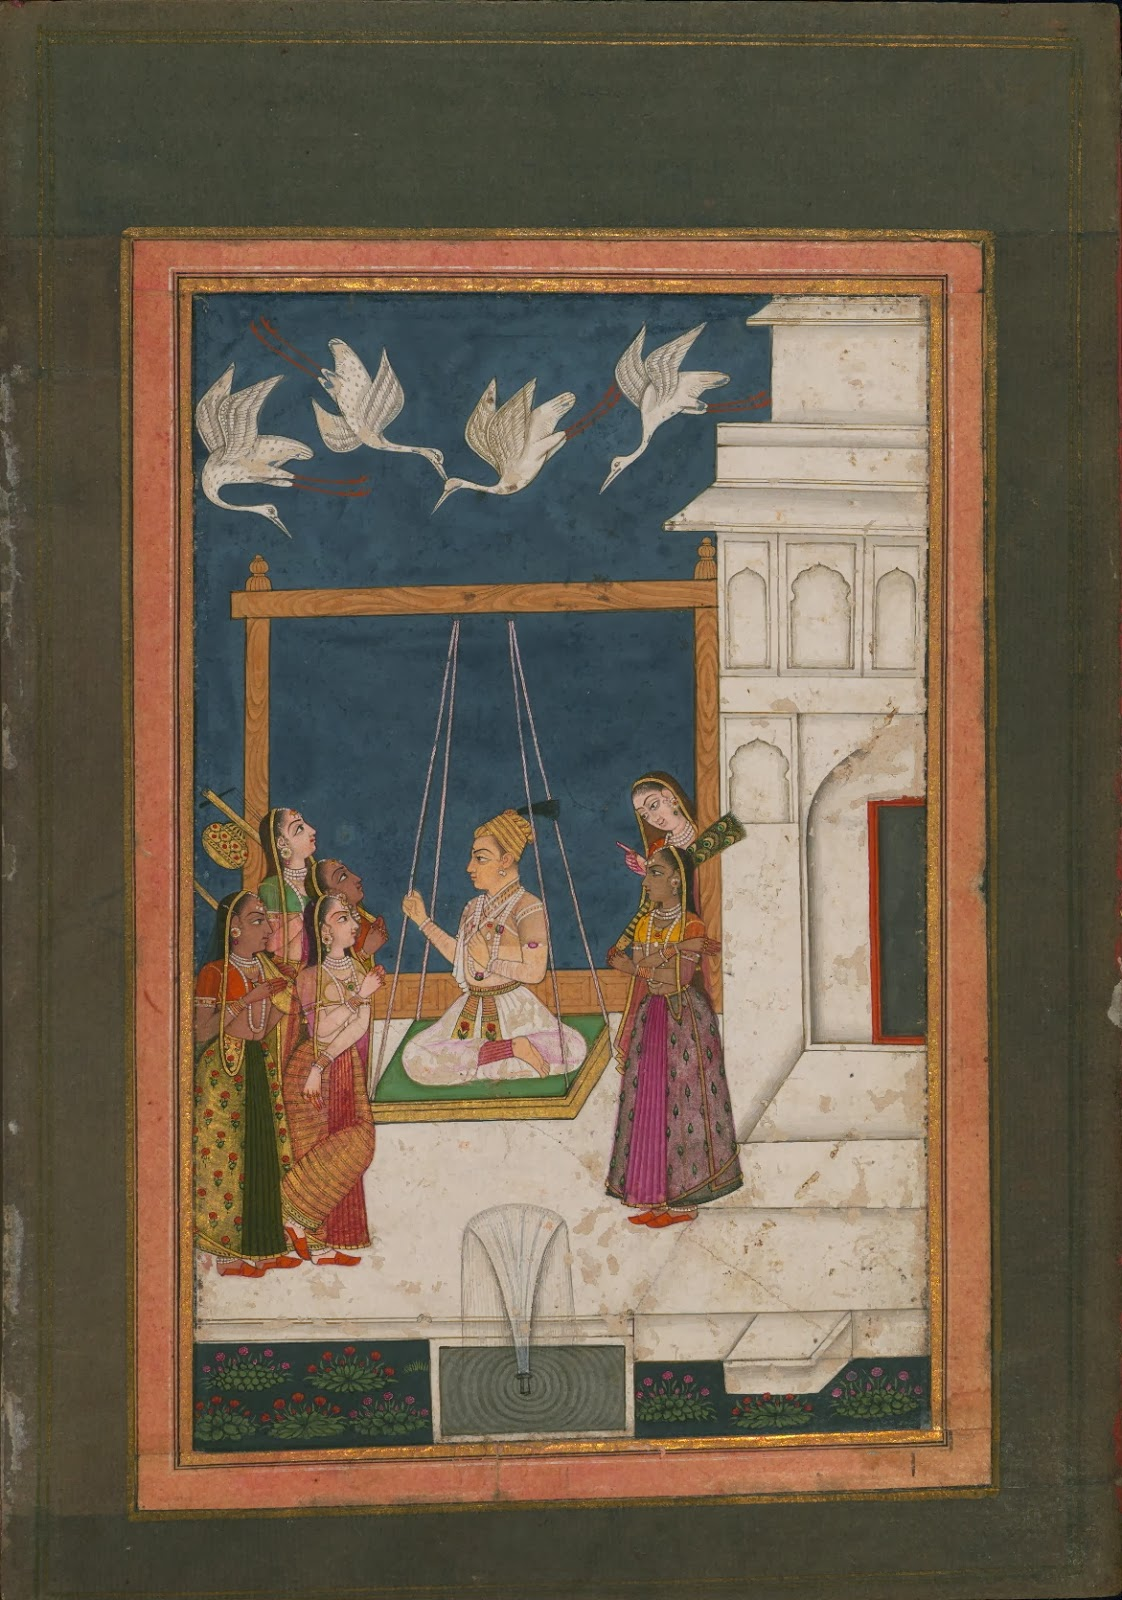 Indian manuscript miniature - music visualisation